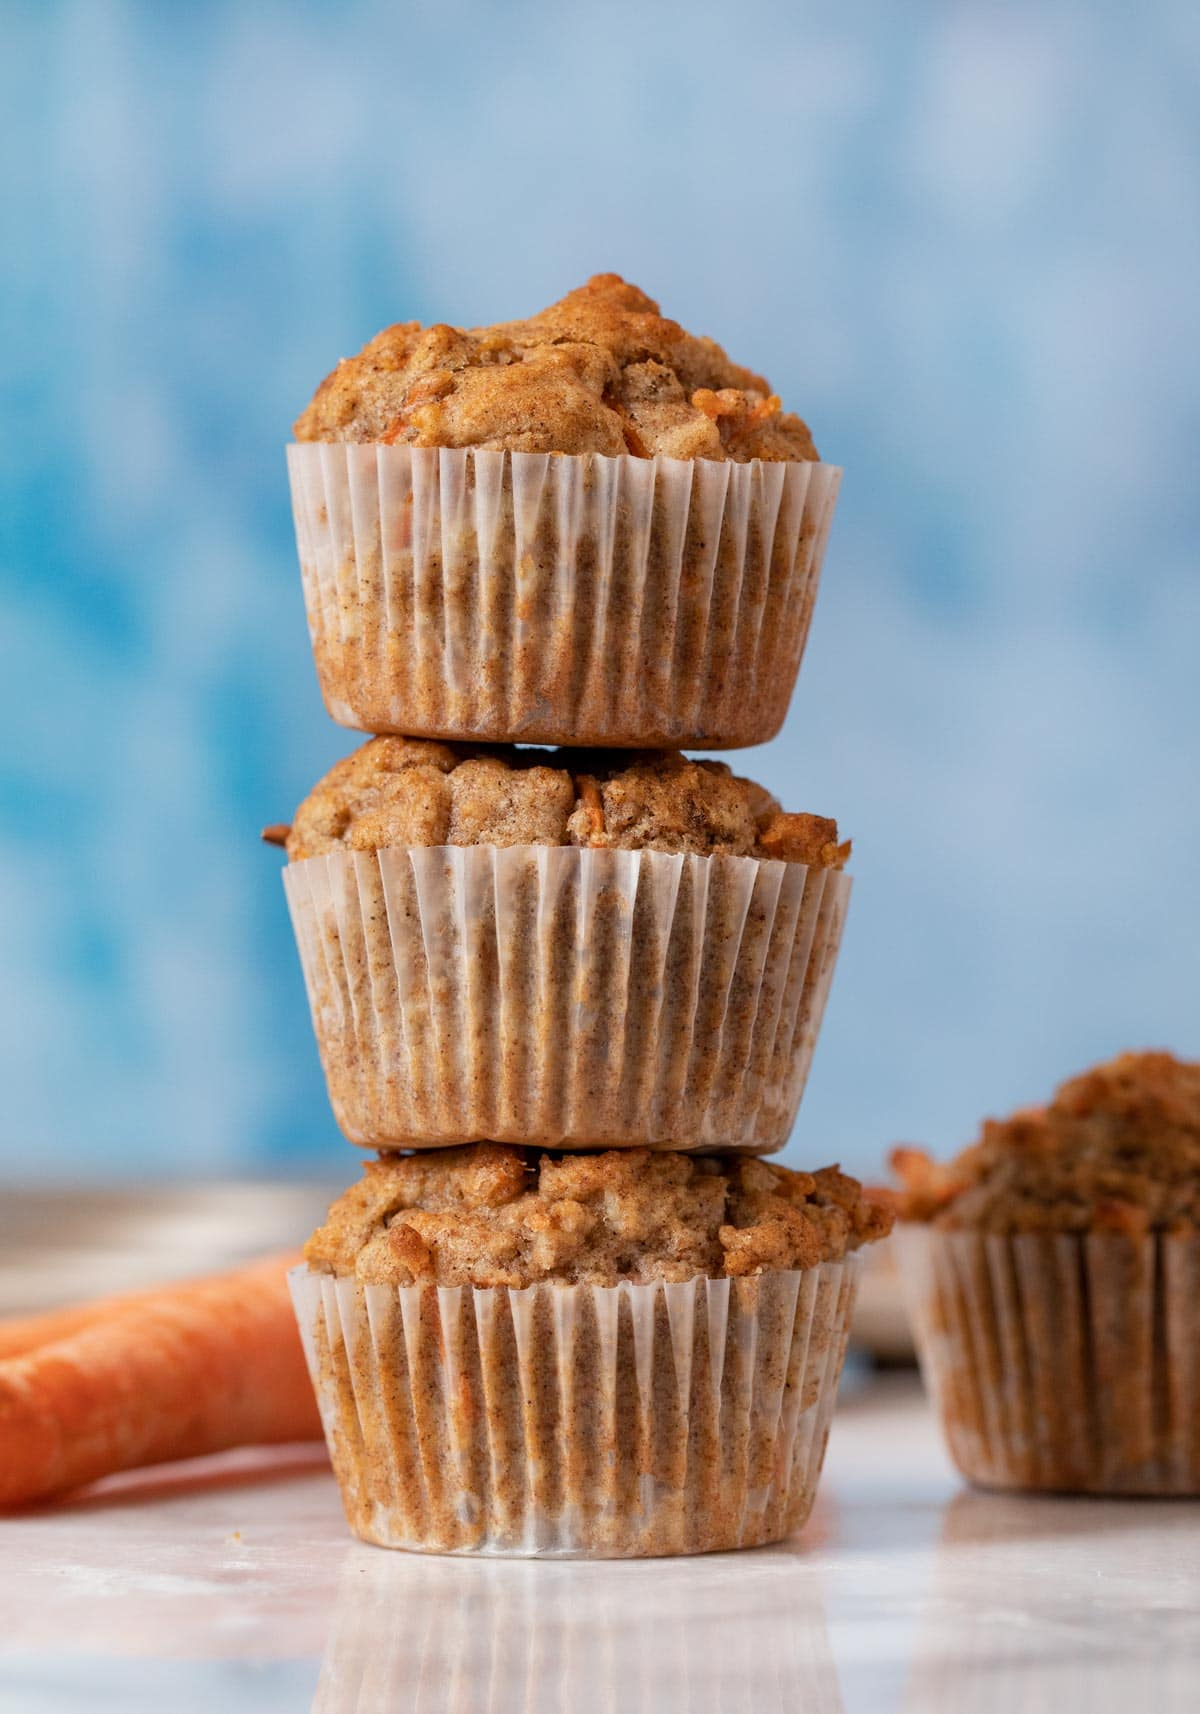 Carrot Muffins in stack